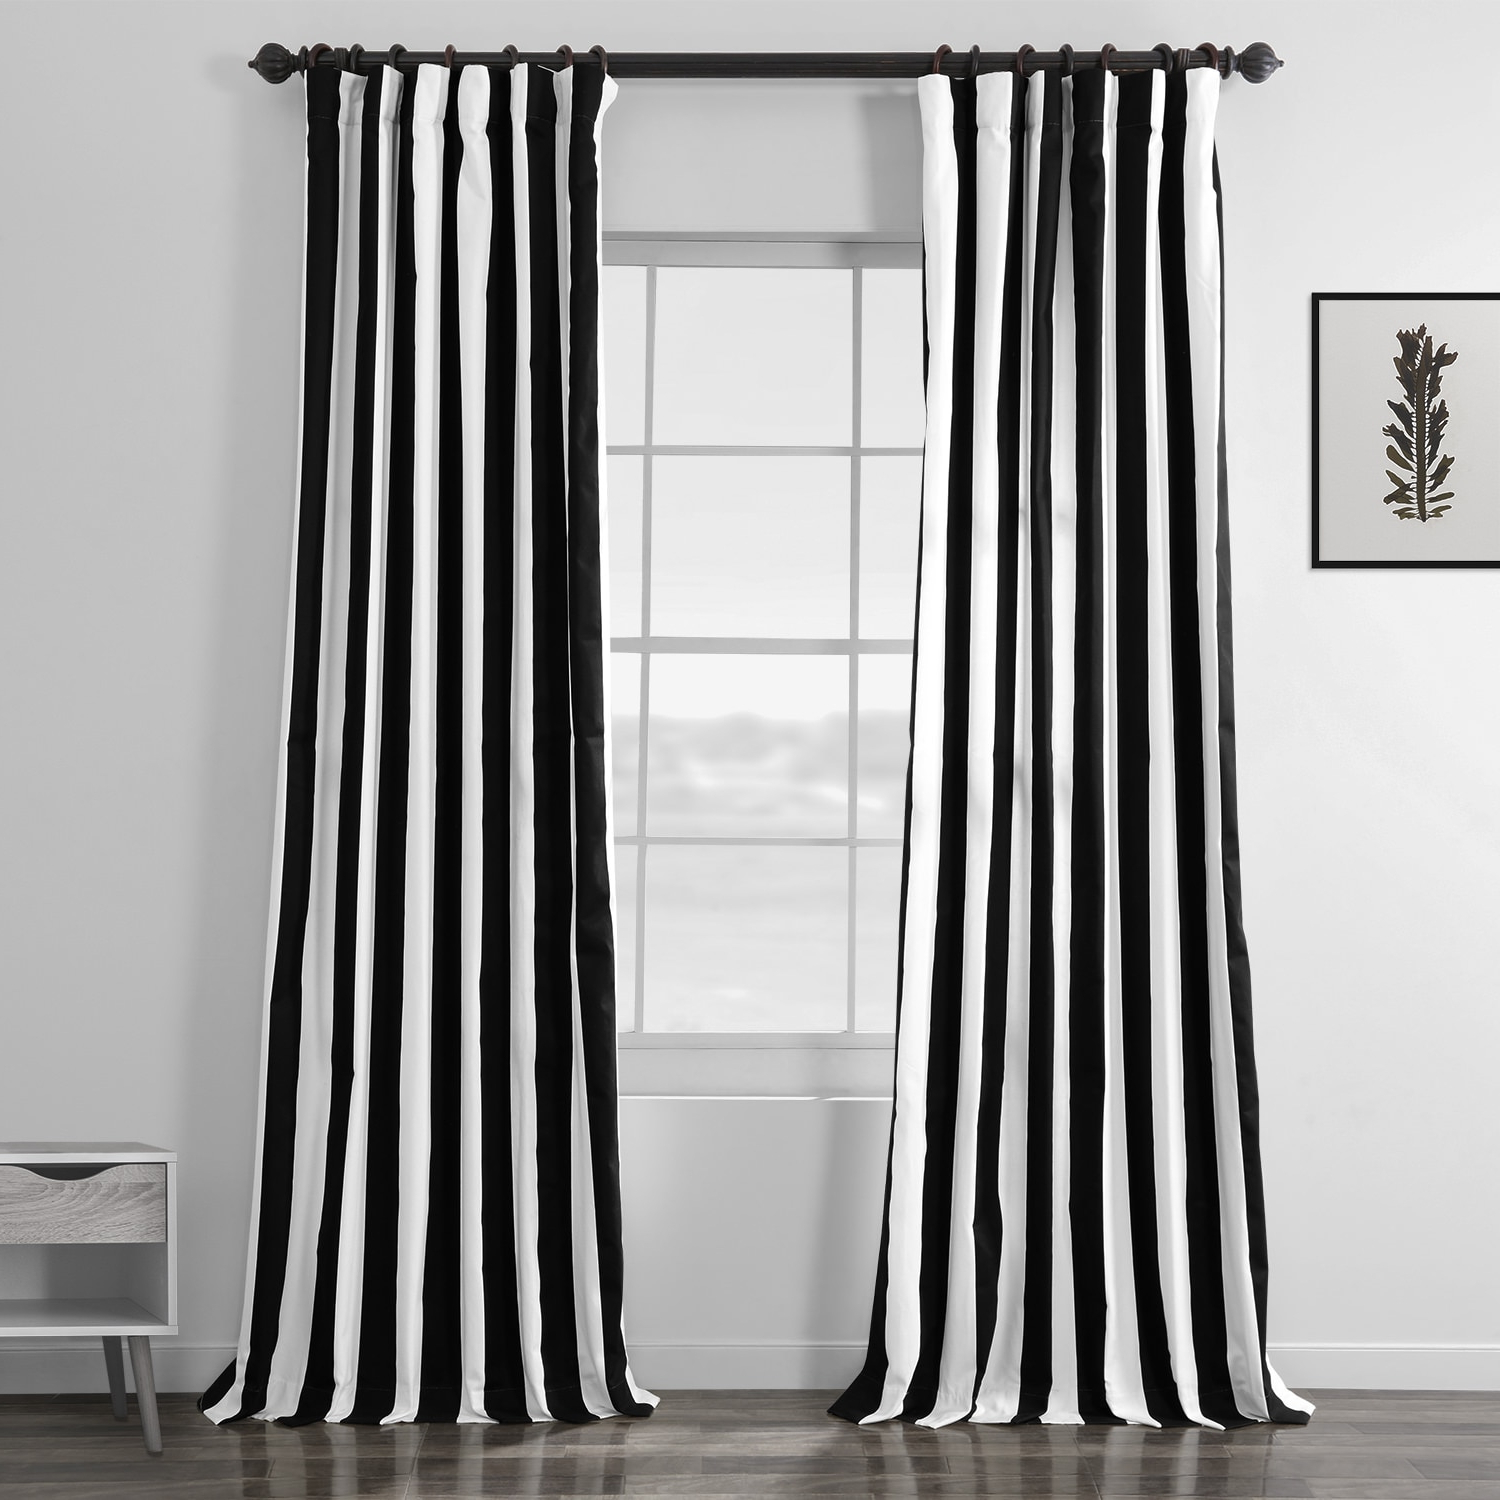 Mecca Printed Cotton Single Curtain Panels With Regard To Favorite Cabana Black Printed Cotton Curtain (Gallery 16 of 21)